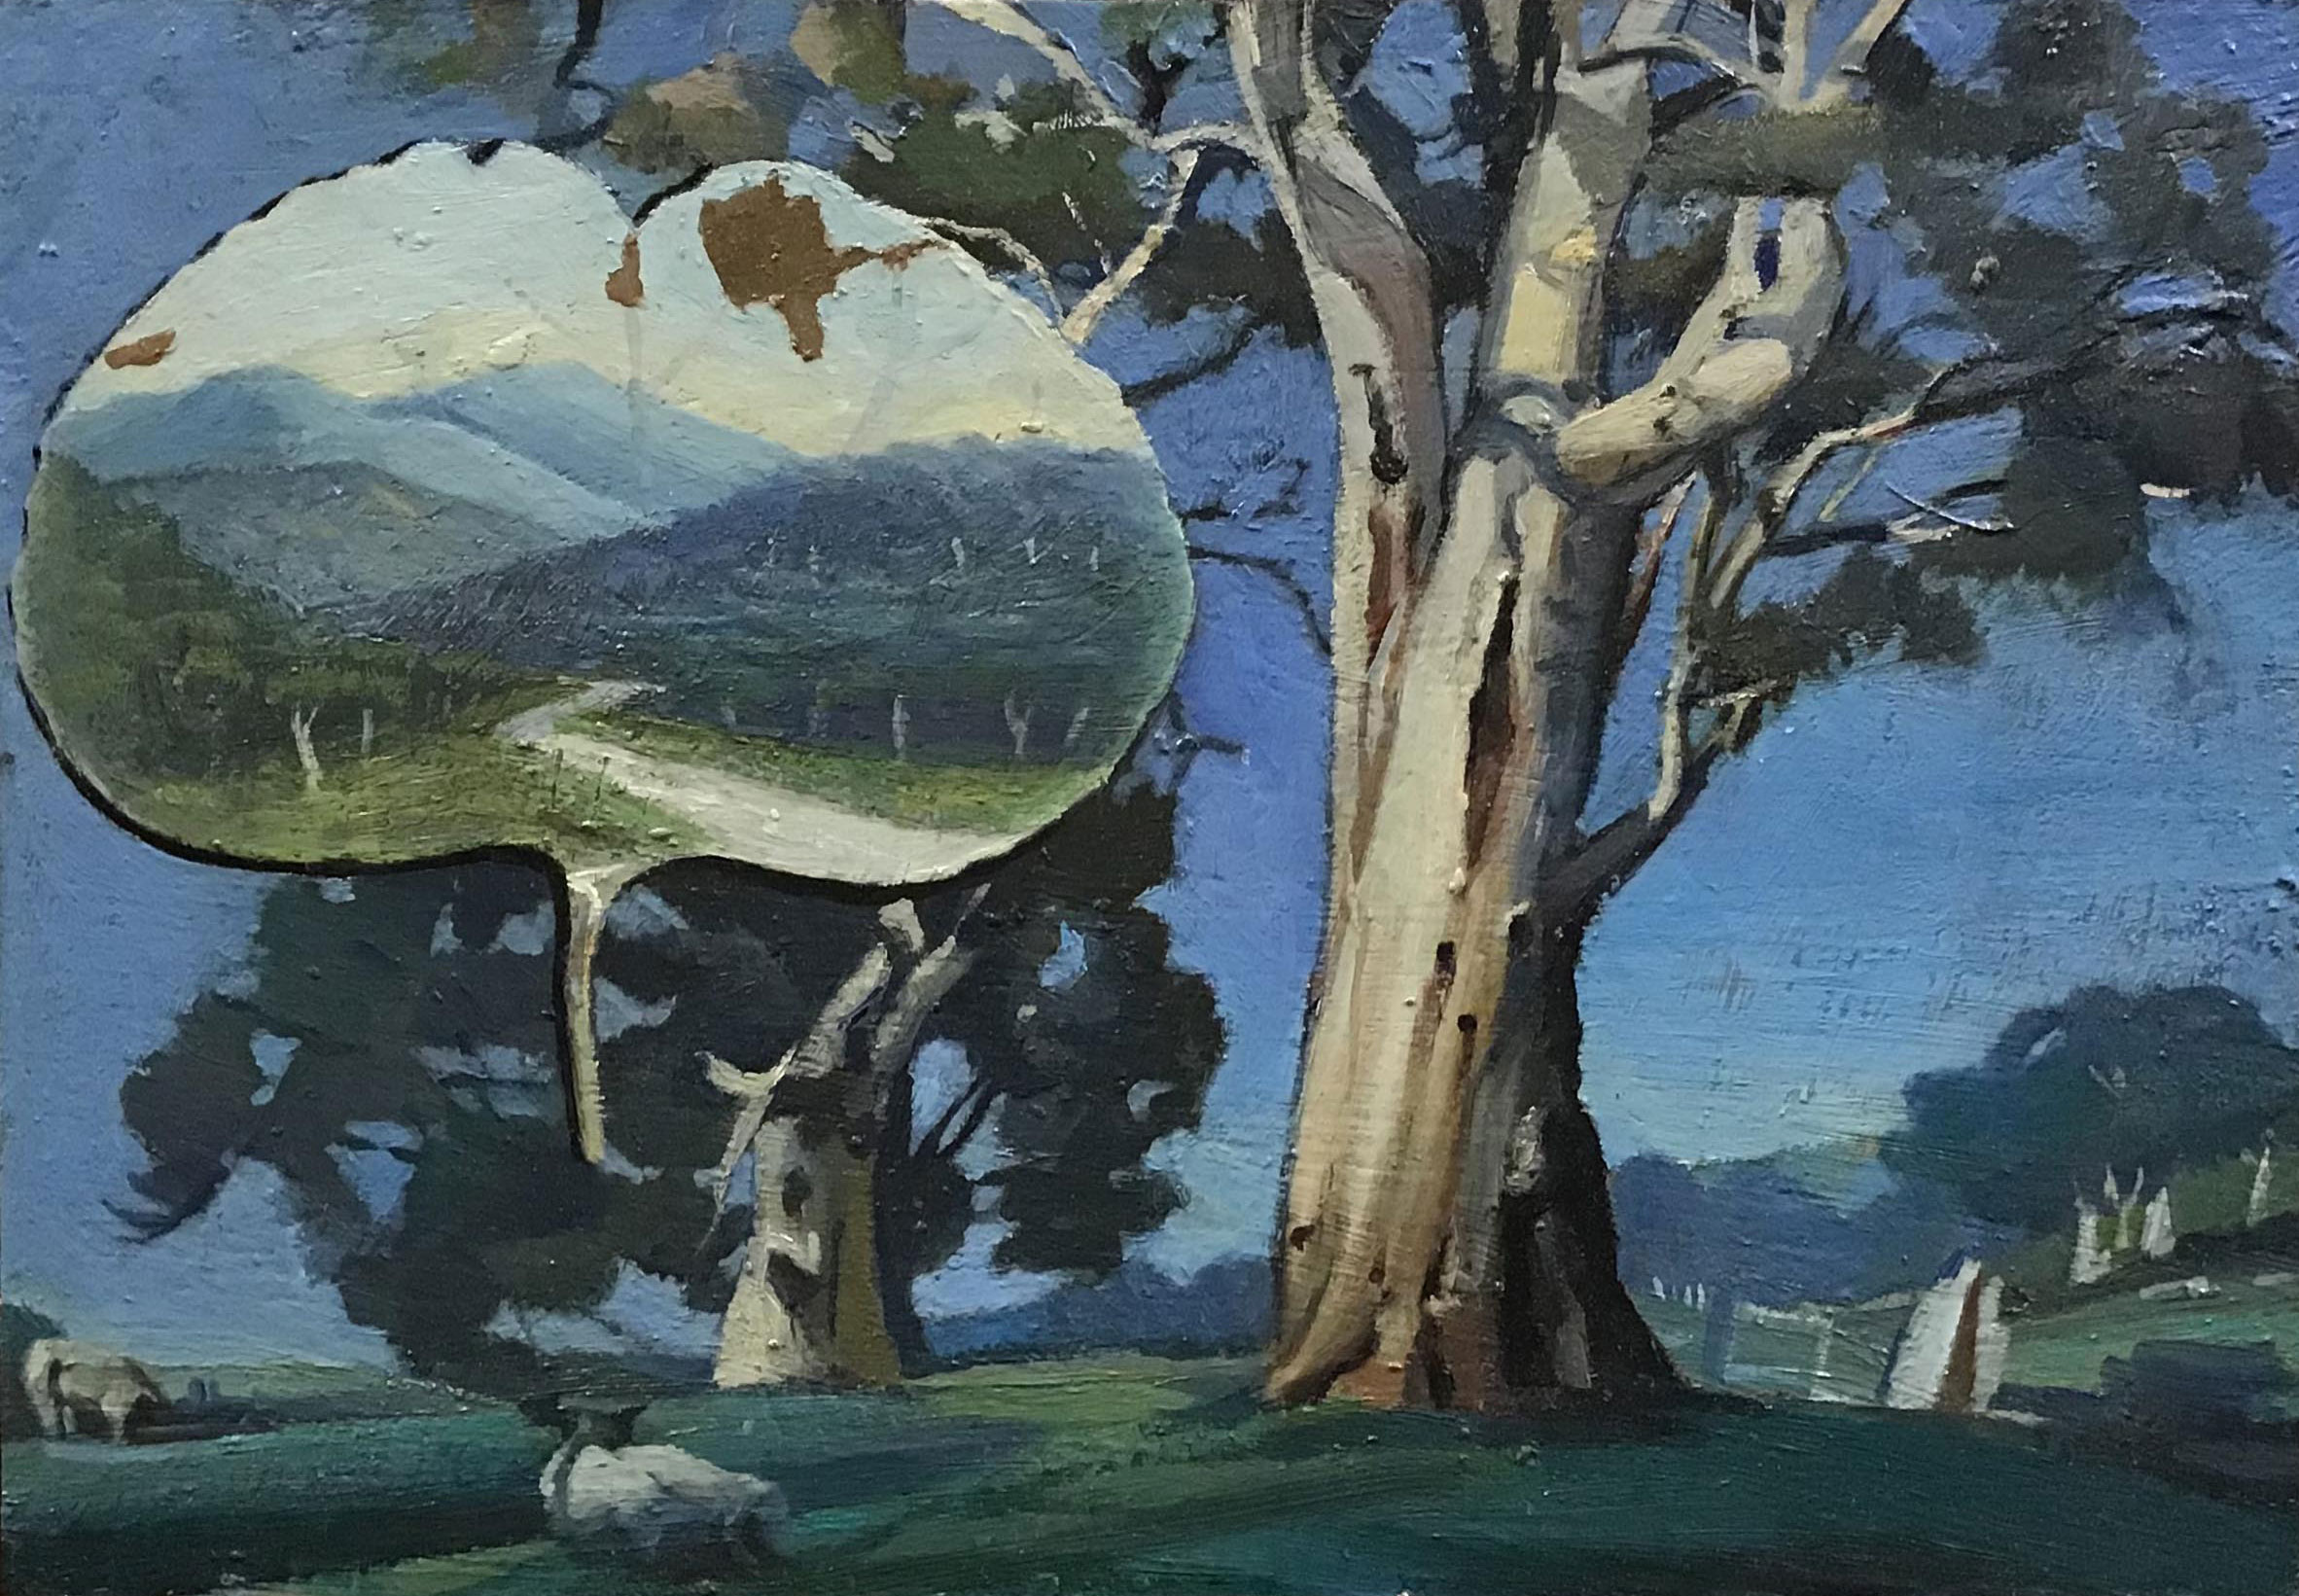 Hadyn Wilson painting in response to Cattle under gum trees by Hans Heysen, 1932